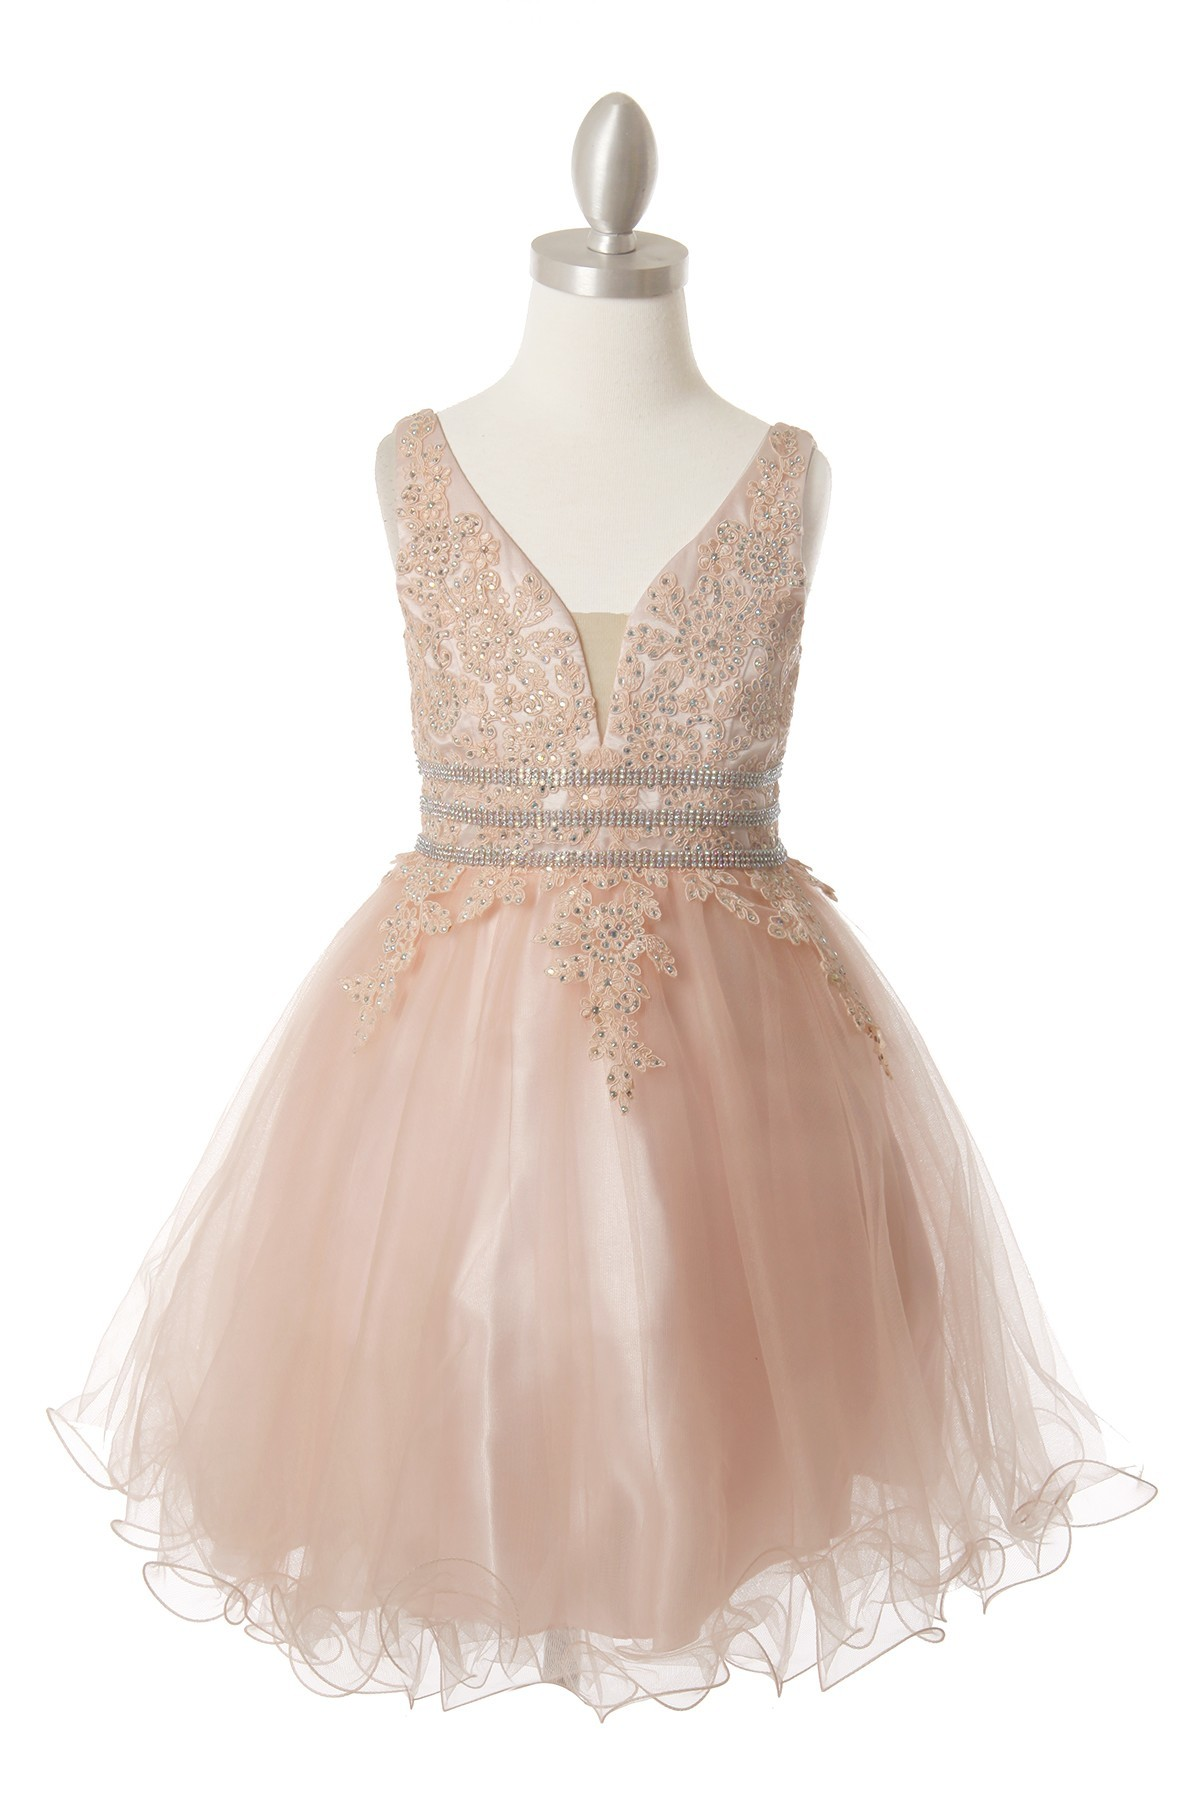 Girls short tulle dusty rose dress